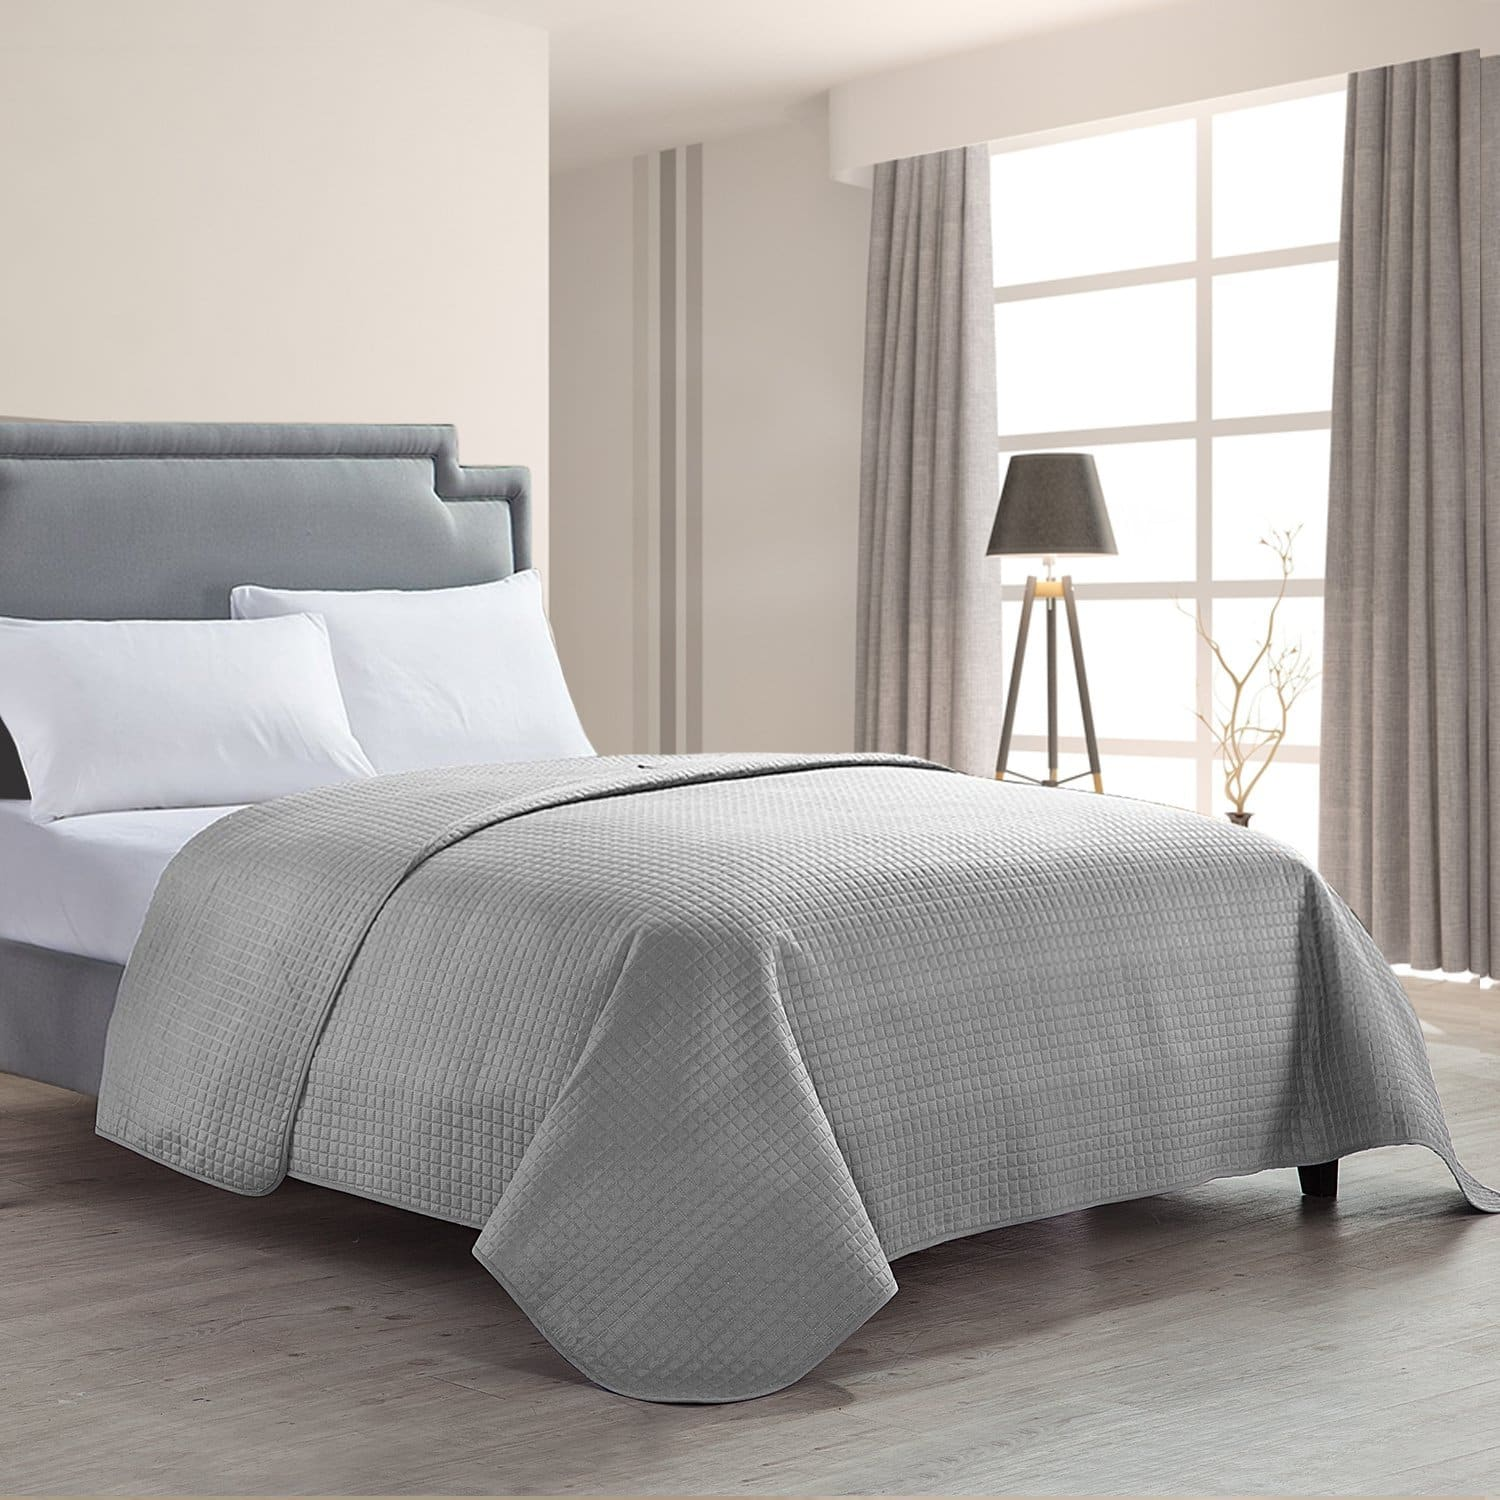 HollyHOME Checkered Super Soft Quilt Bedspread, Various Sizes & Colors, Amazon Bestseller